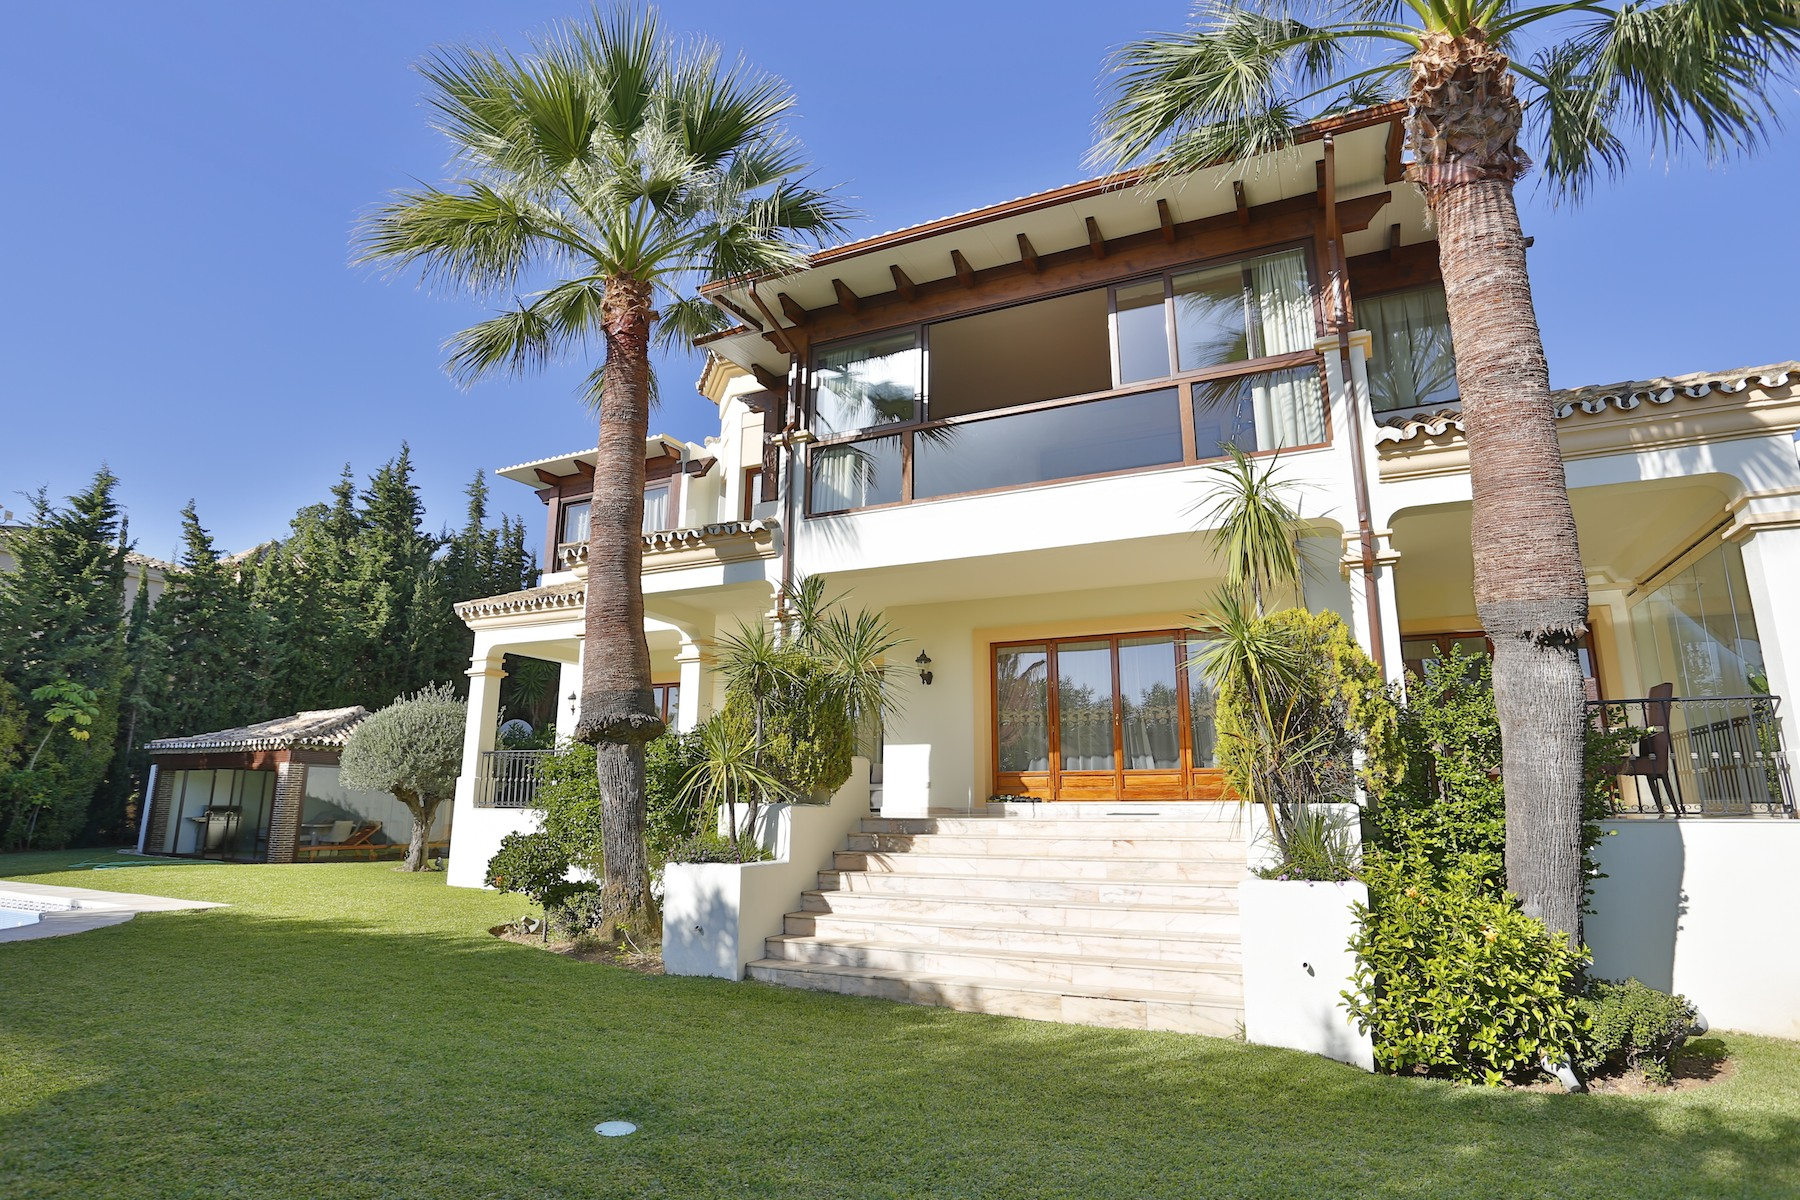 Single Family Home for Sale at Elegant villa situated in the best sought after residential area in Marbella Sierra Blanca Marbella, Costa Del Sol, 29600 Spain